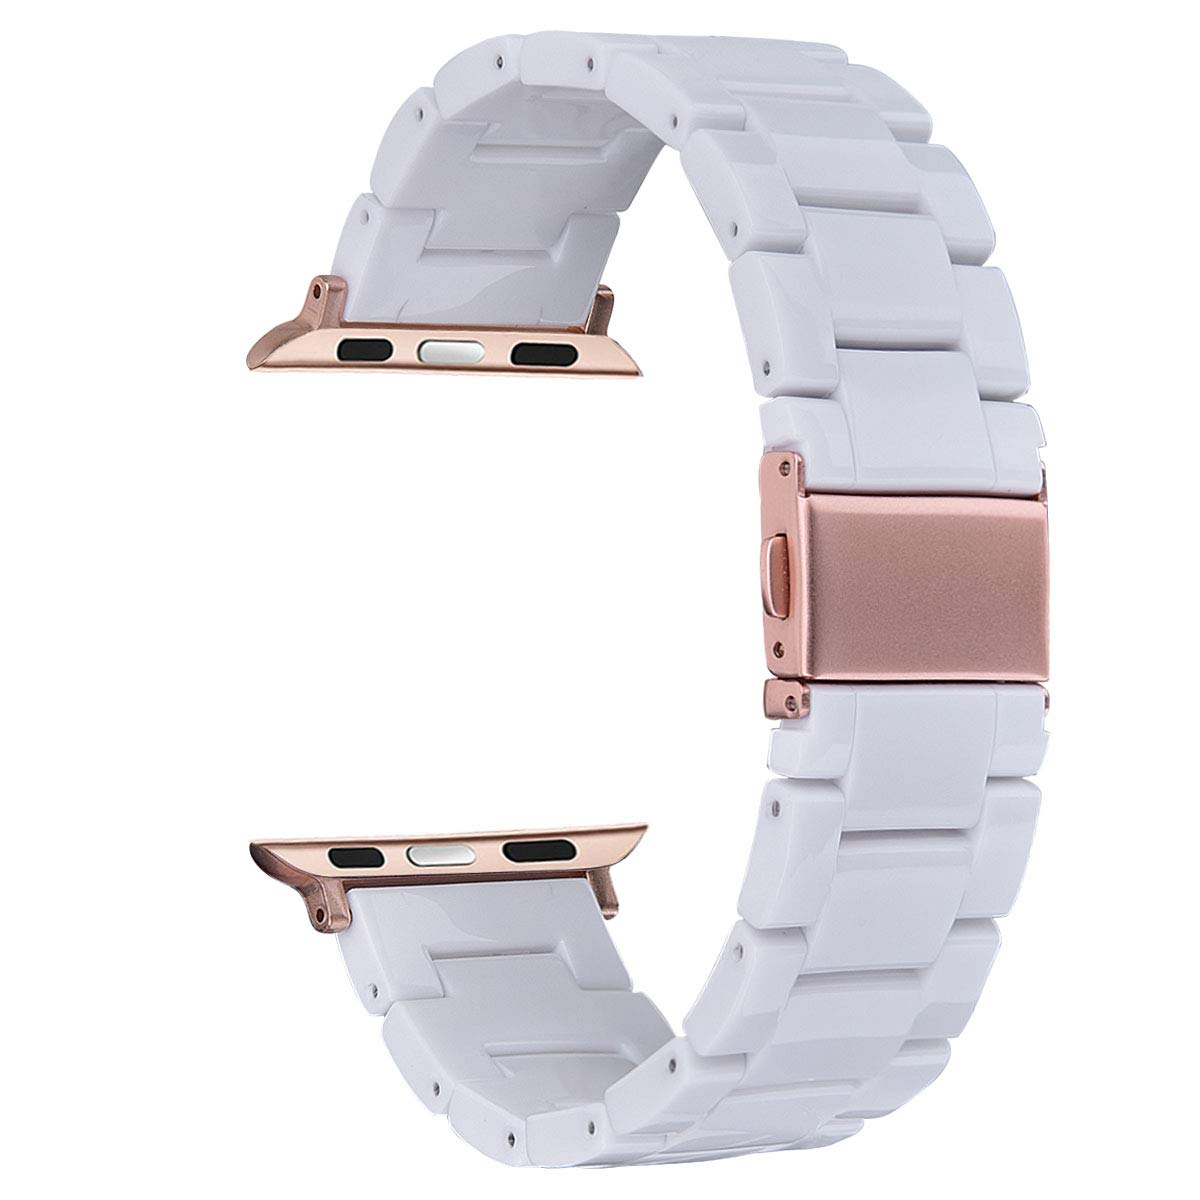 V-MORO Resin Strap Compatible with Apple Watch Band 38mm 40mm iWatch Series 4/3/2/1 with Stainless Steel Buckle Replacement Wristband Women Girl Men(White-Tone, 38mm/40mm) by V-MORO